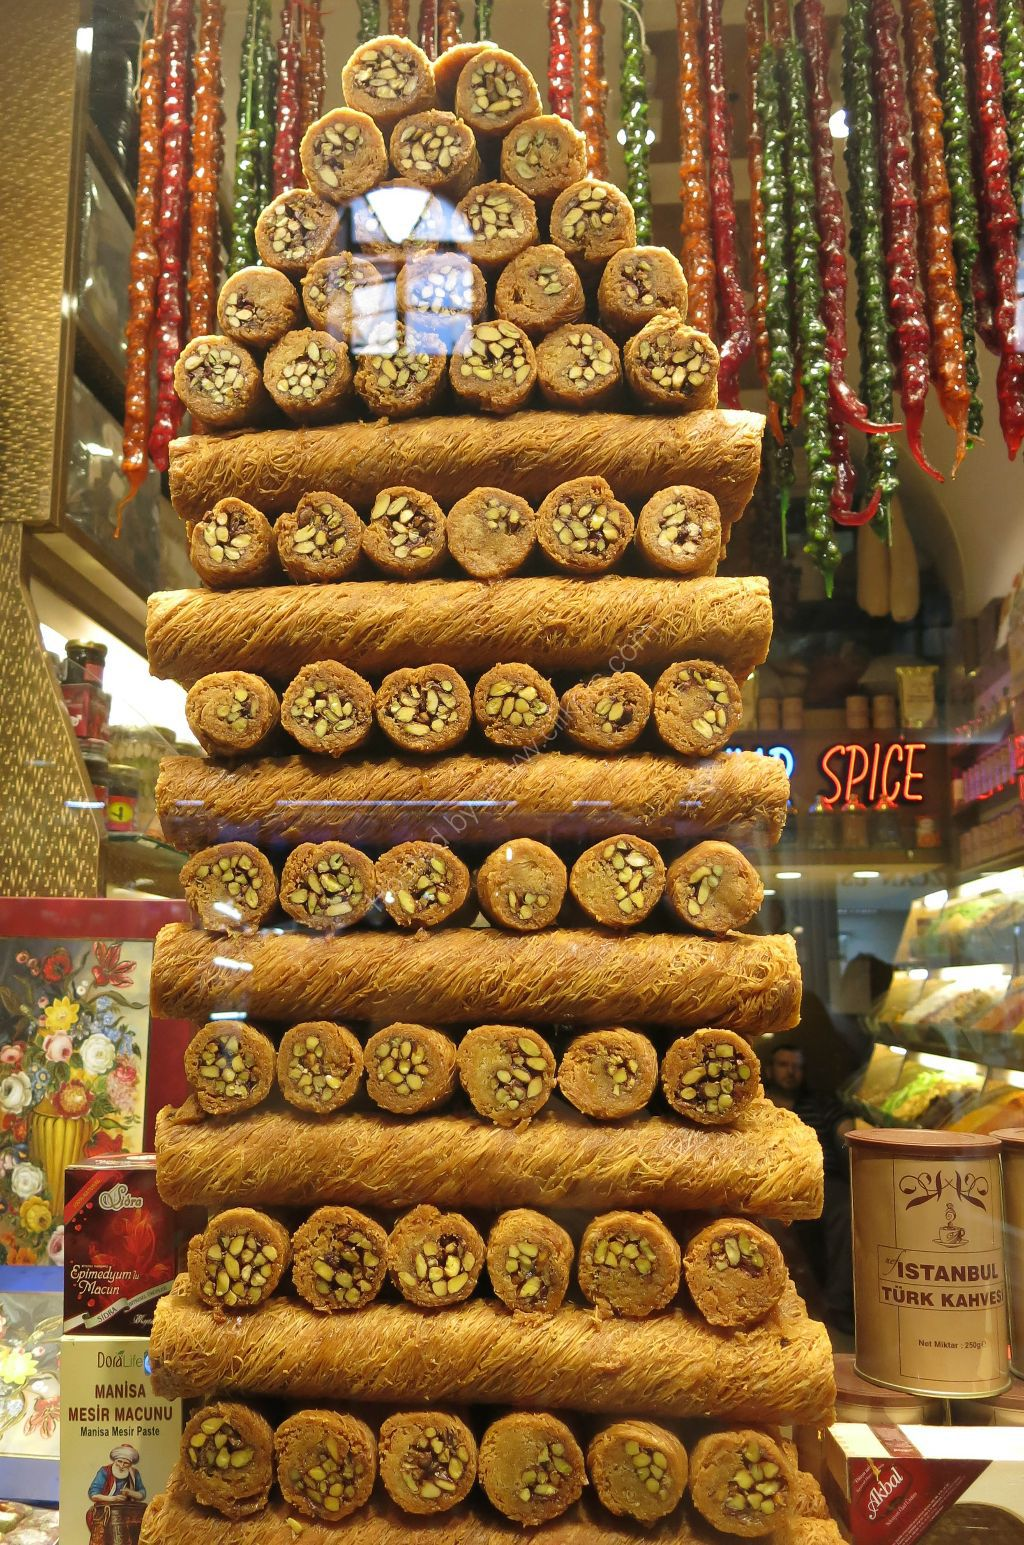 Baklava rolls at the Grand Bazaar, Istanbul